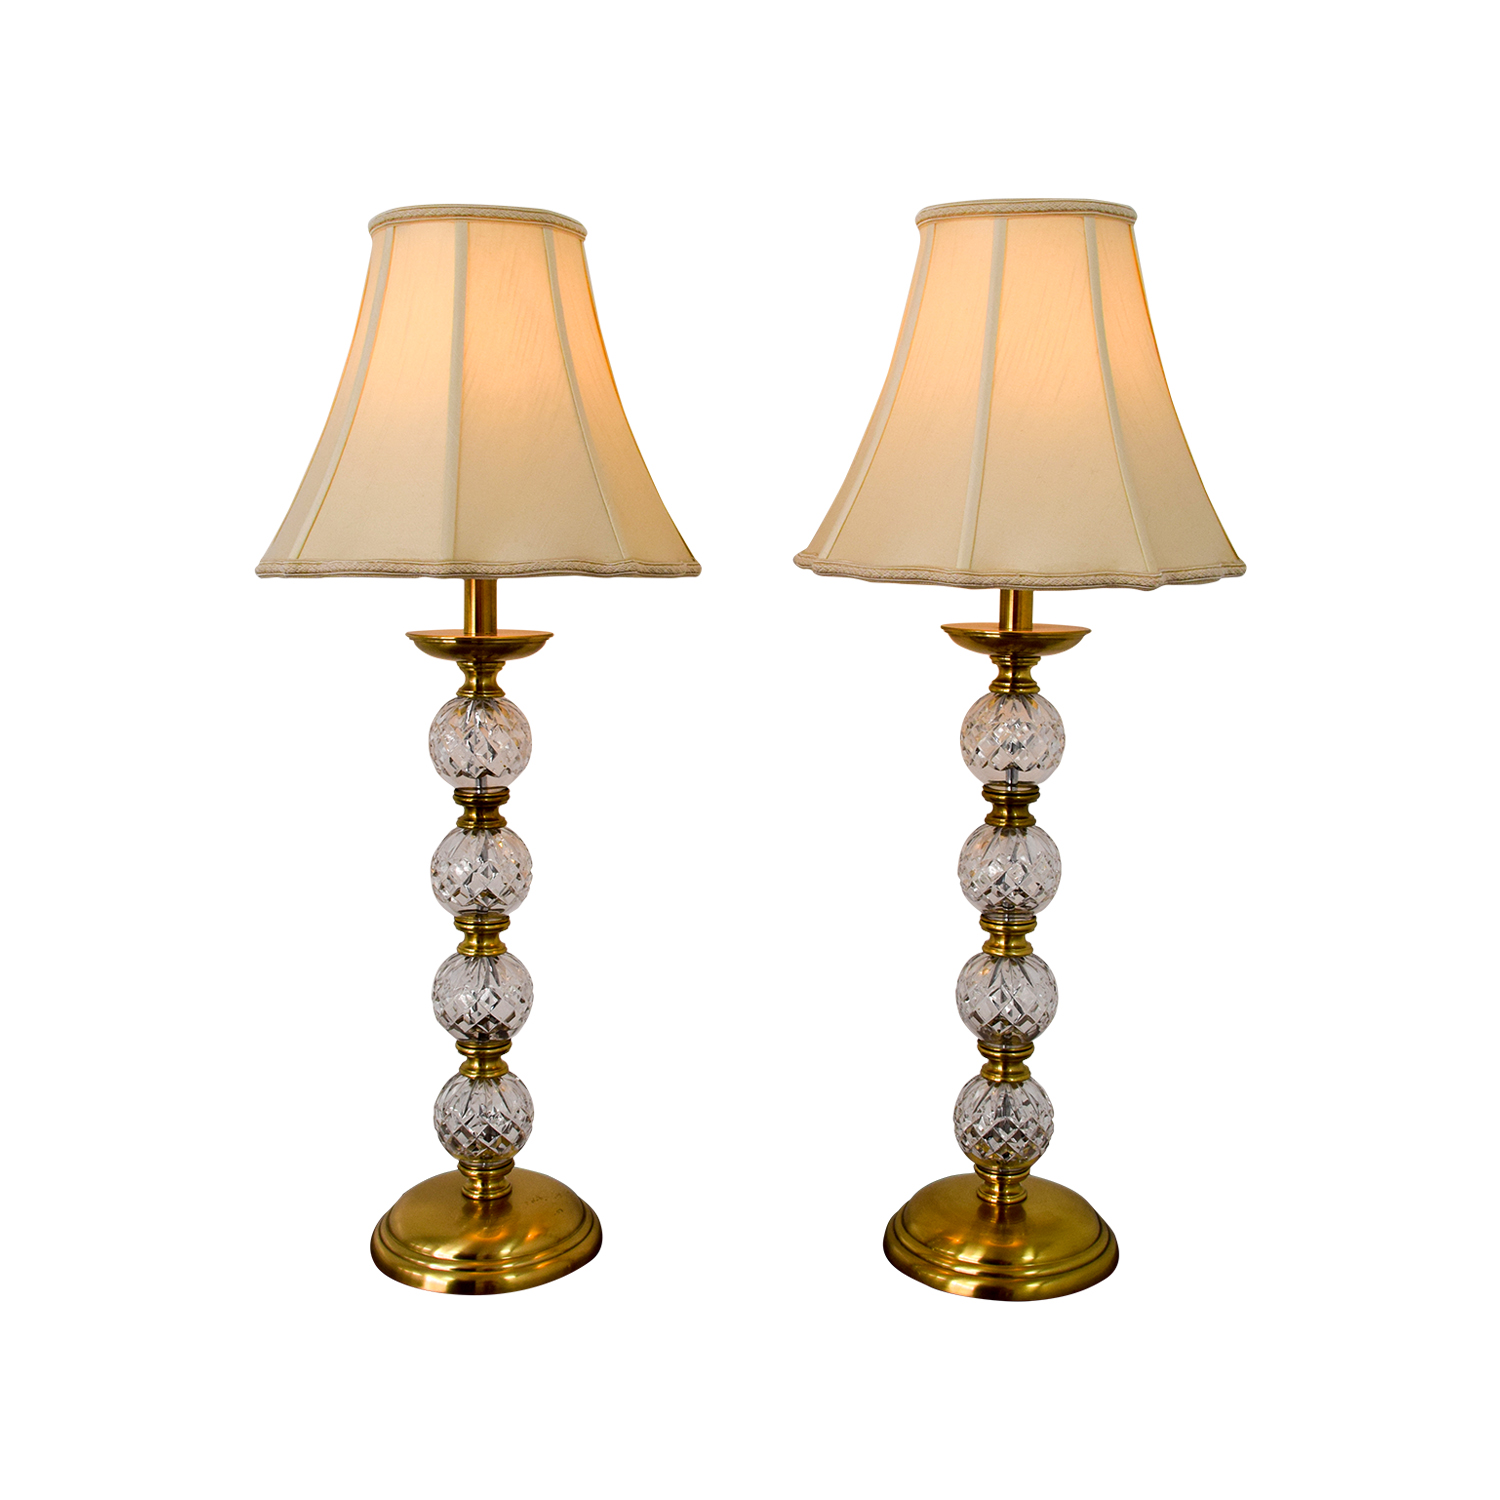 Waterford Lismore Buffet Lamp / Decor